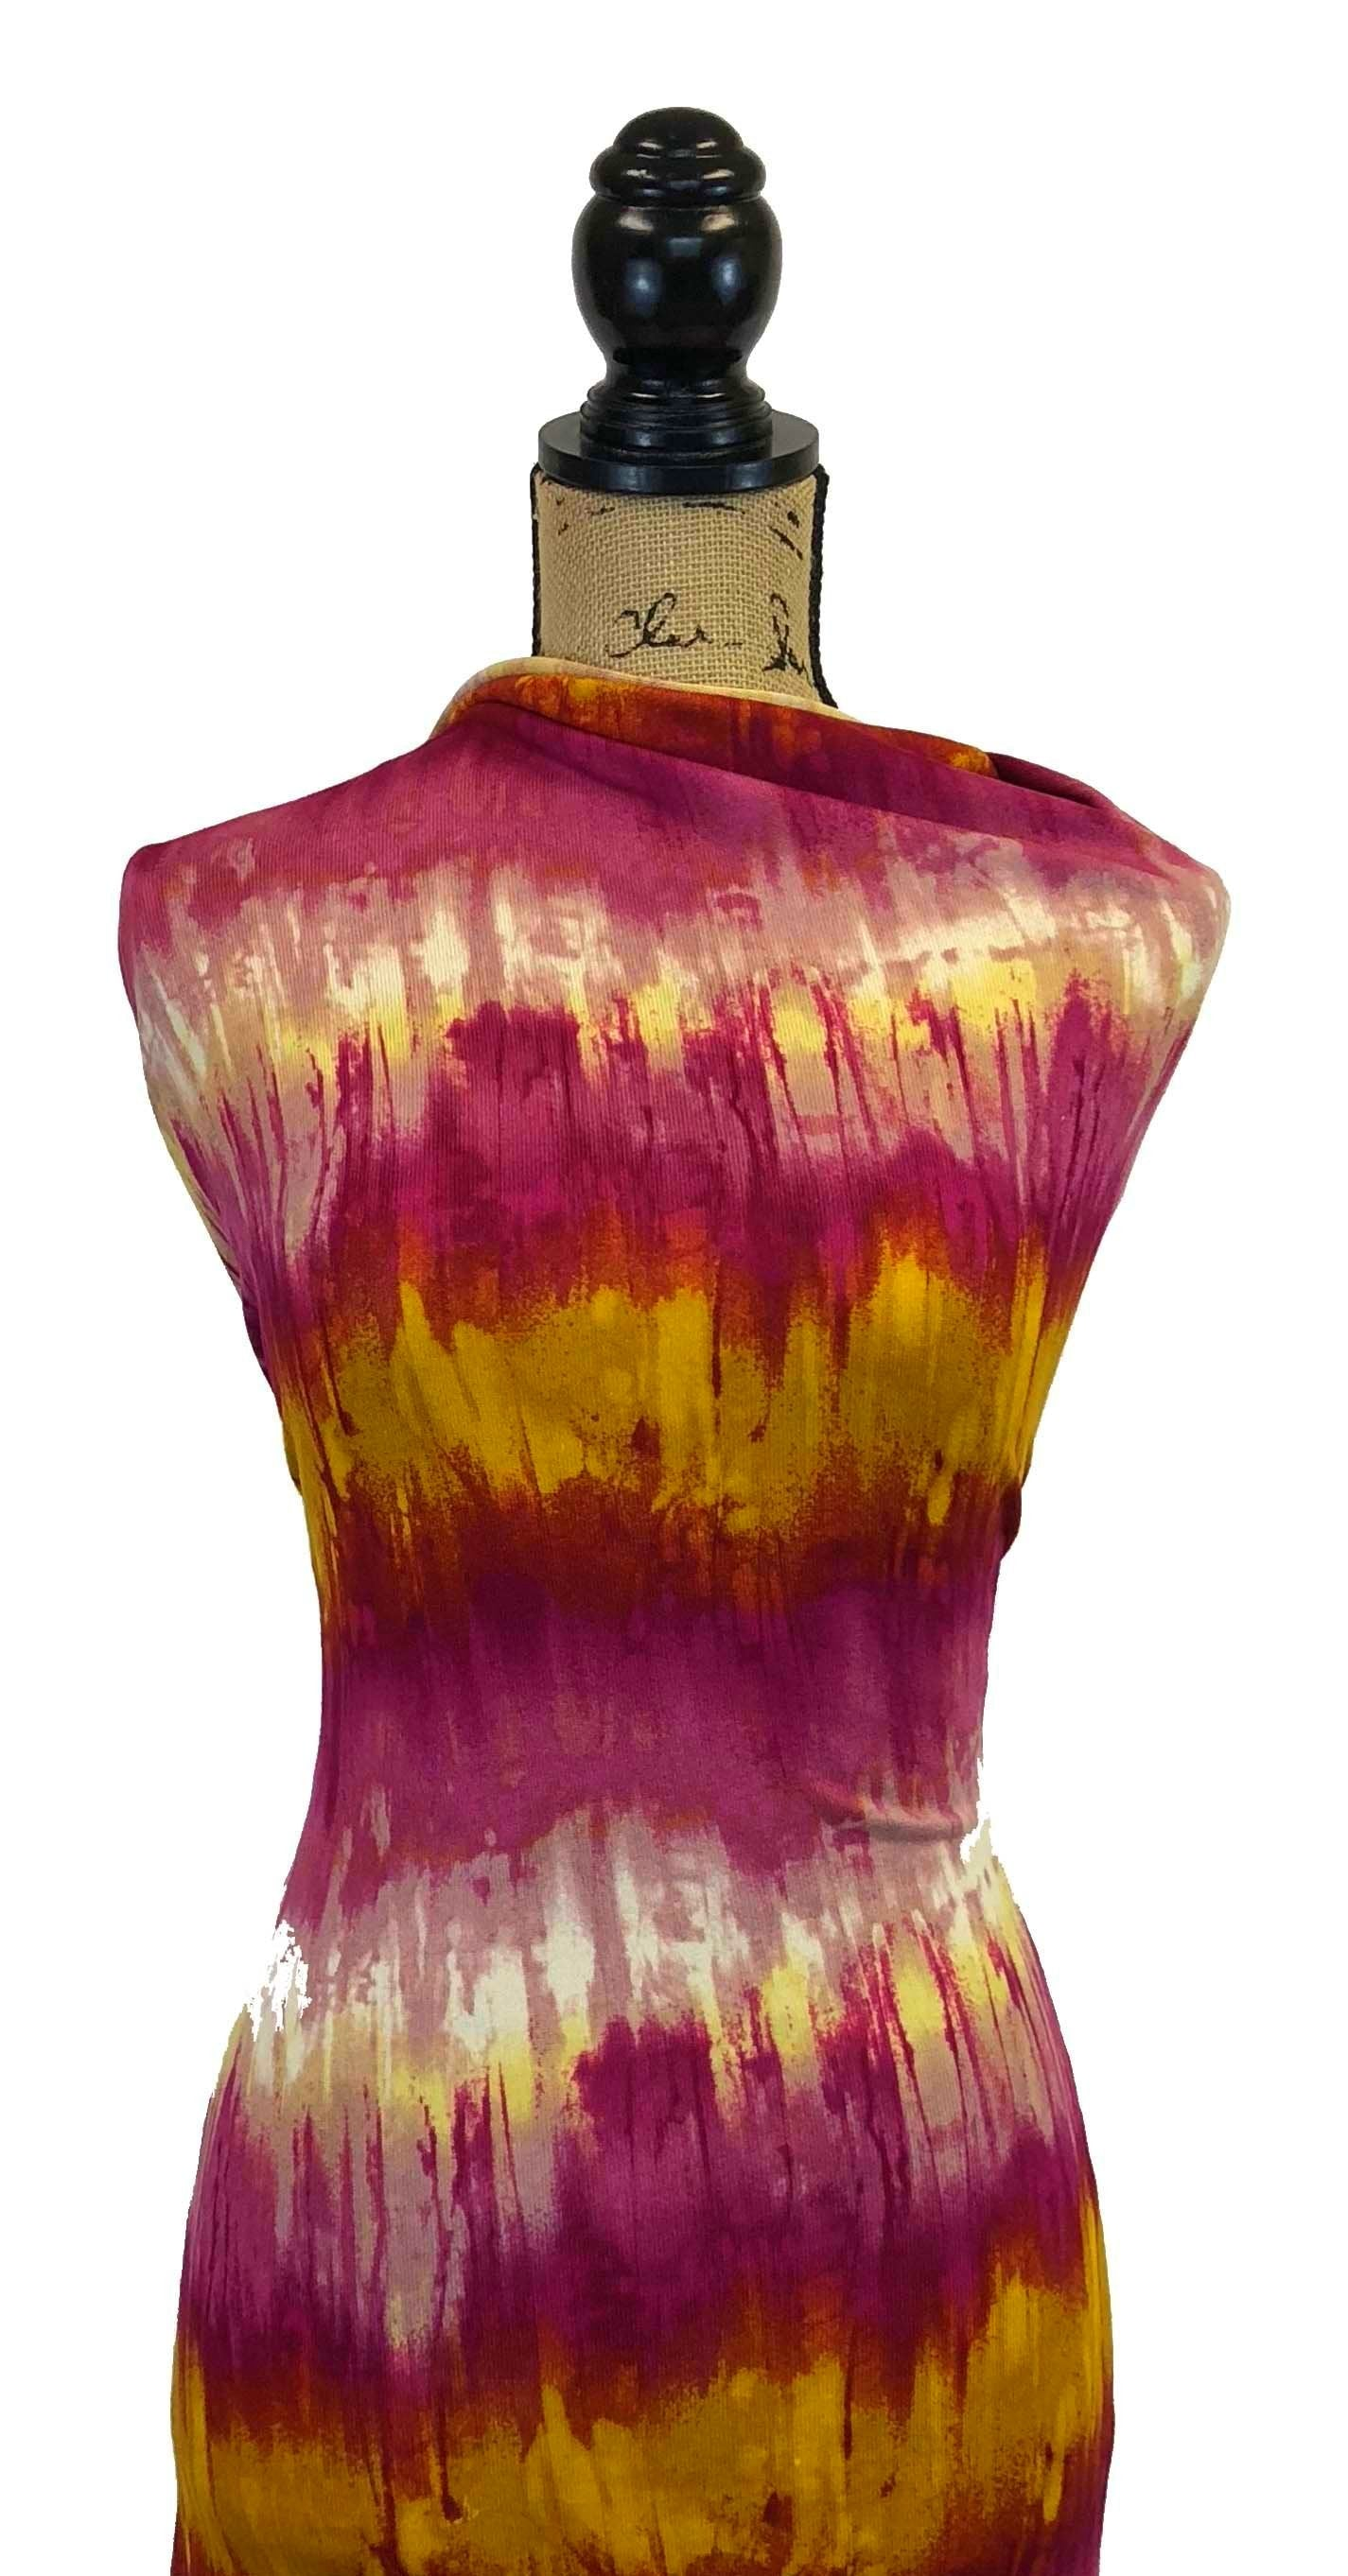 Sweater Knit - Magenta & Gold Tie Dye